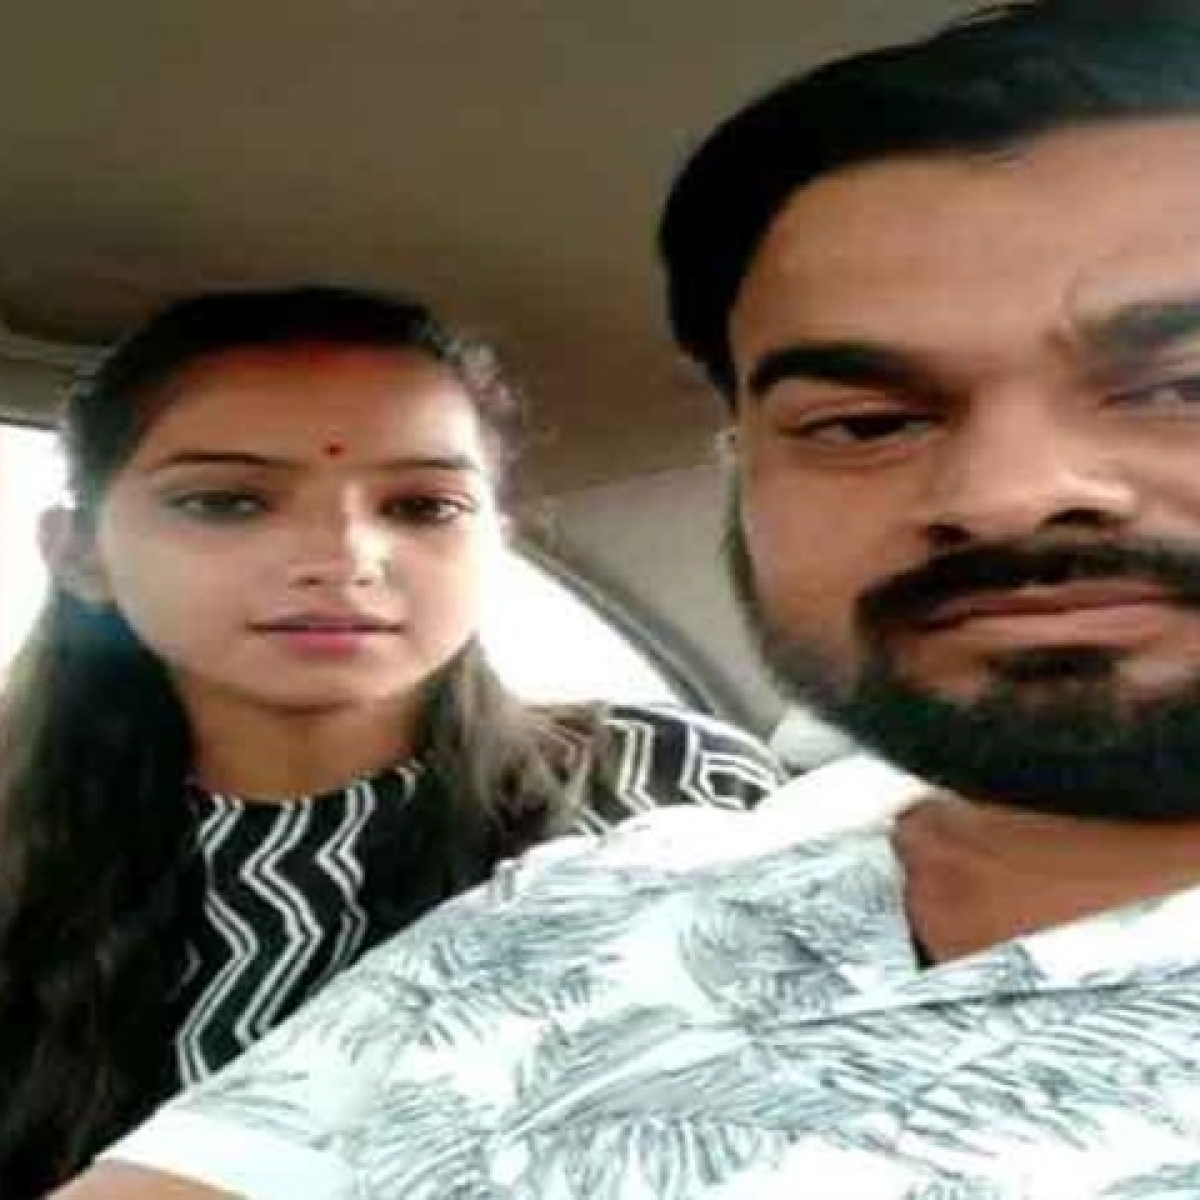 Post kidnapping rumours, Allahabad HC directs to provide police protection to BJP MLAs daughter, husband; Court also says couple's marriage valid